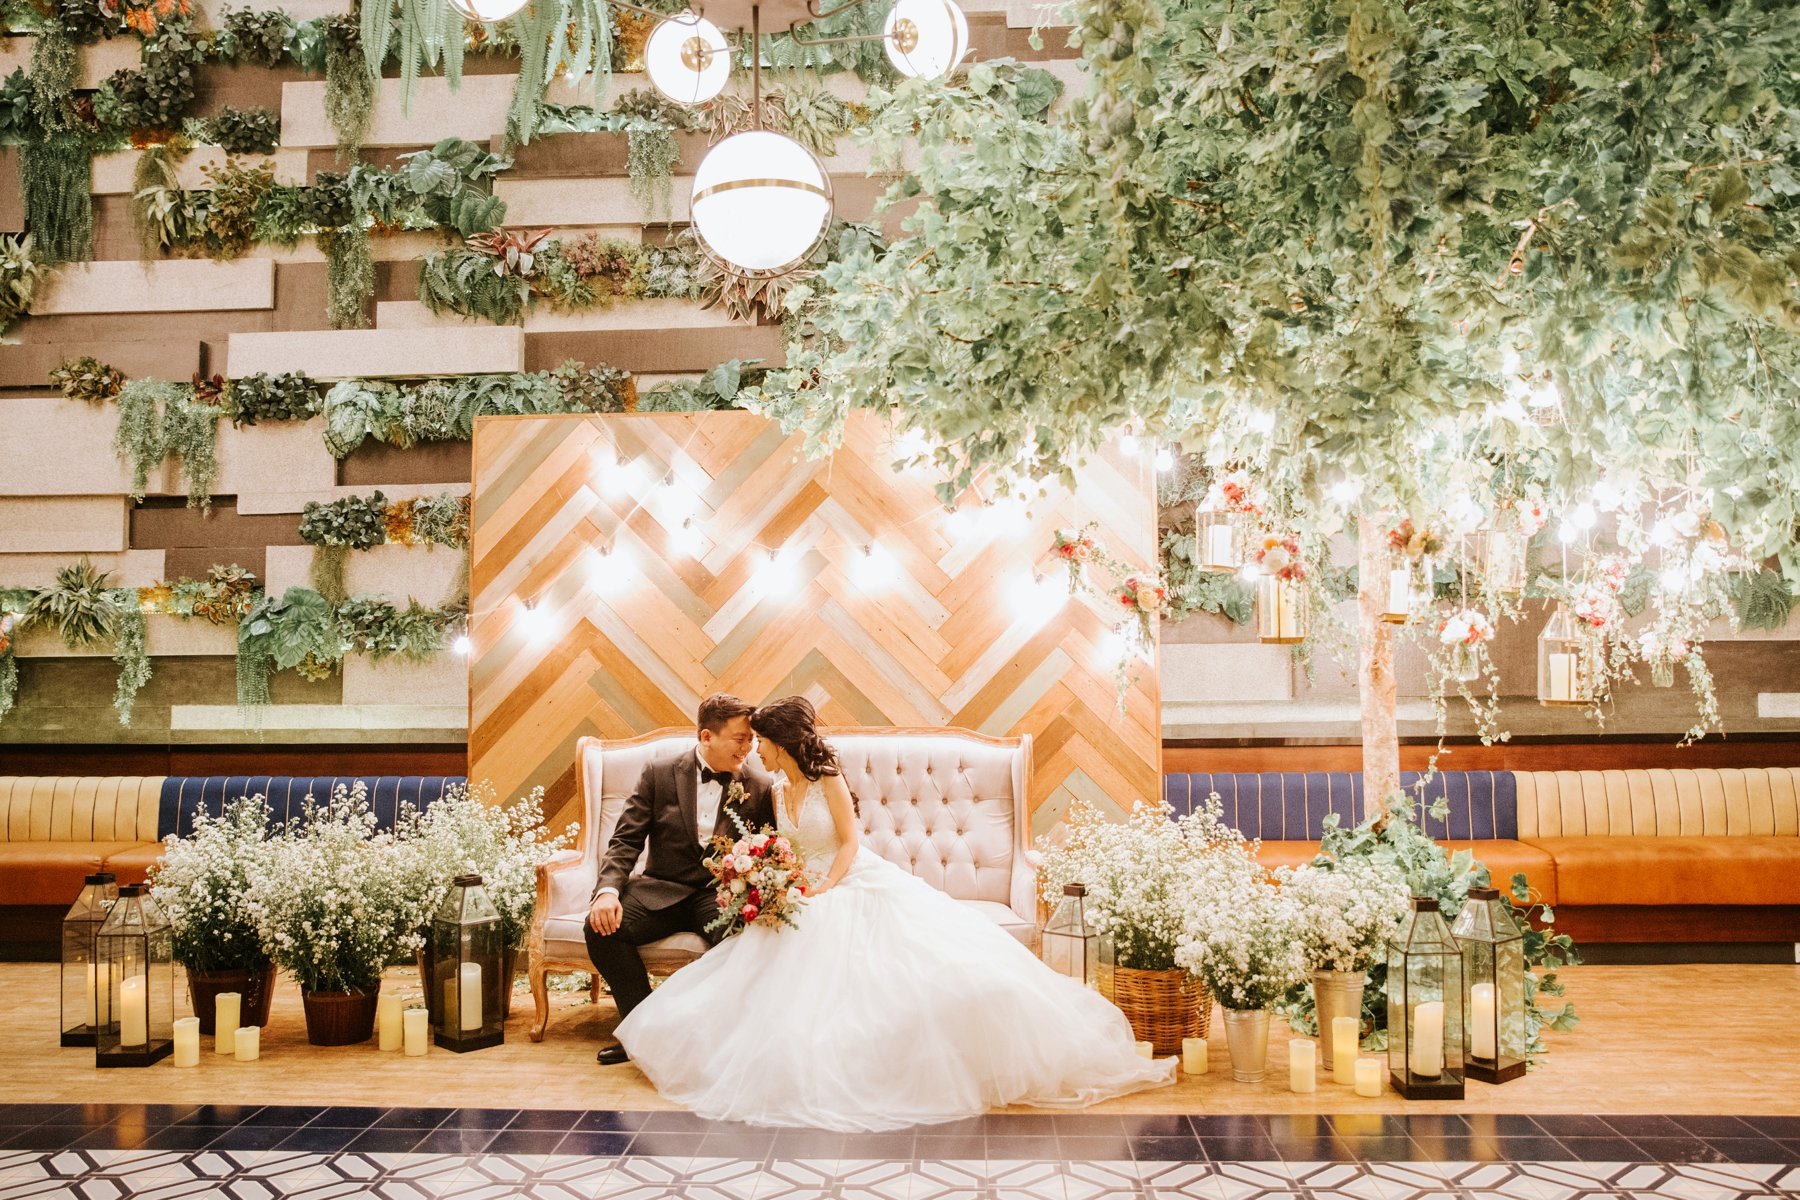 Jakarta wedding andra eflin antijitters photo wedding junglespirit Images